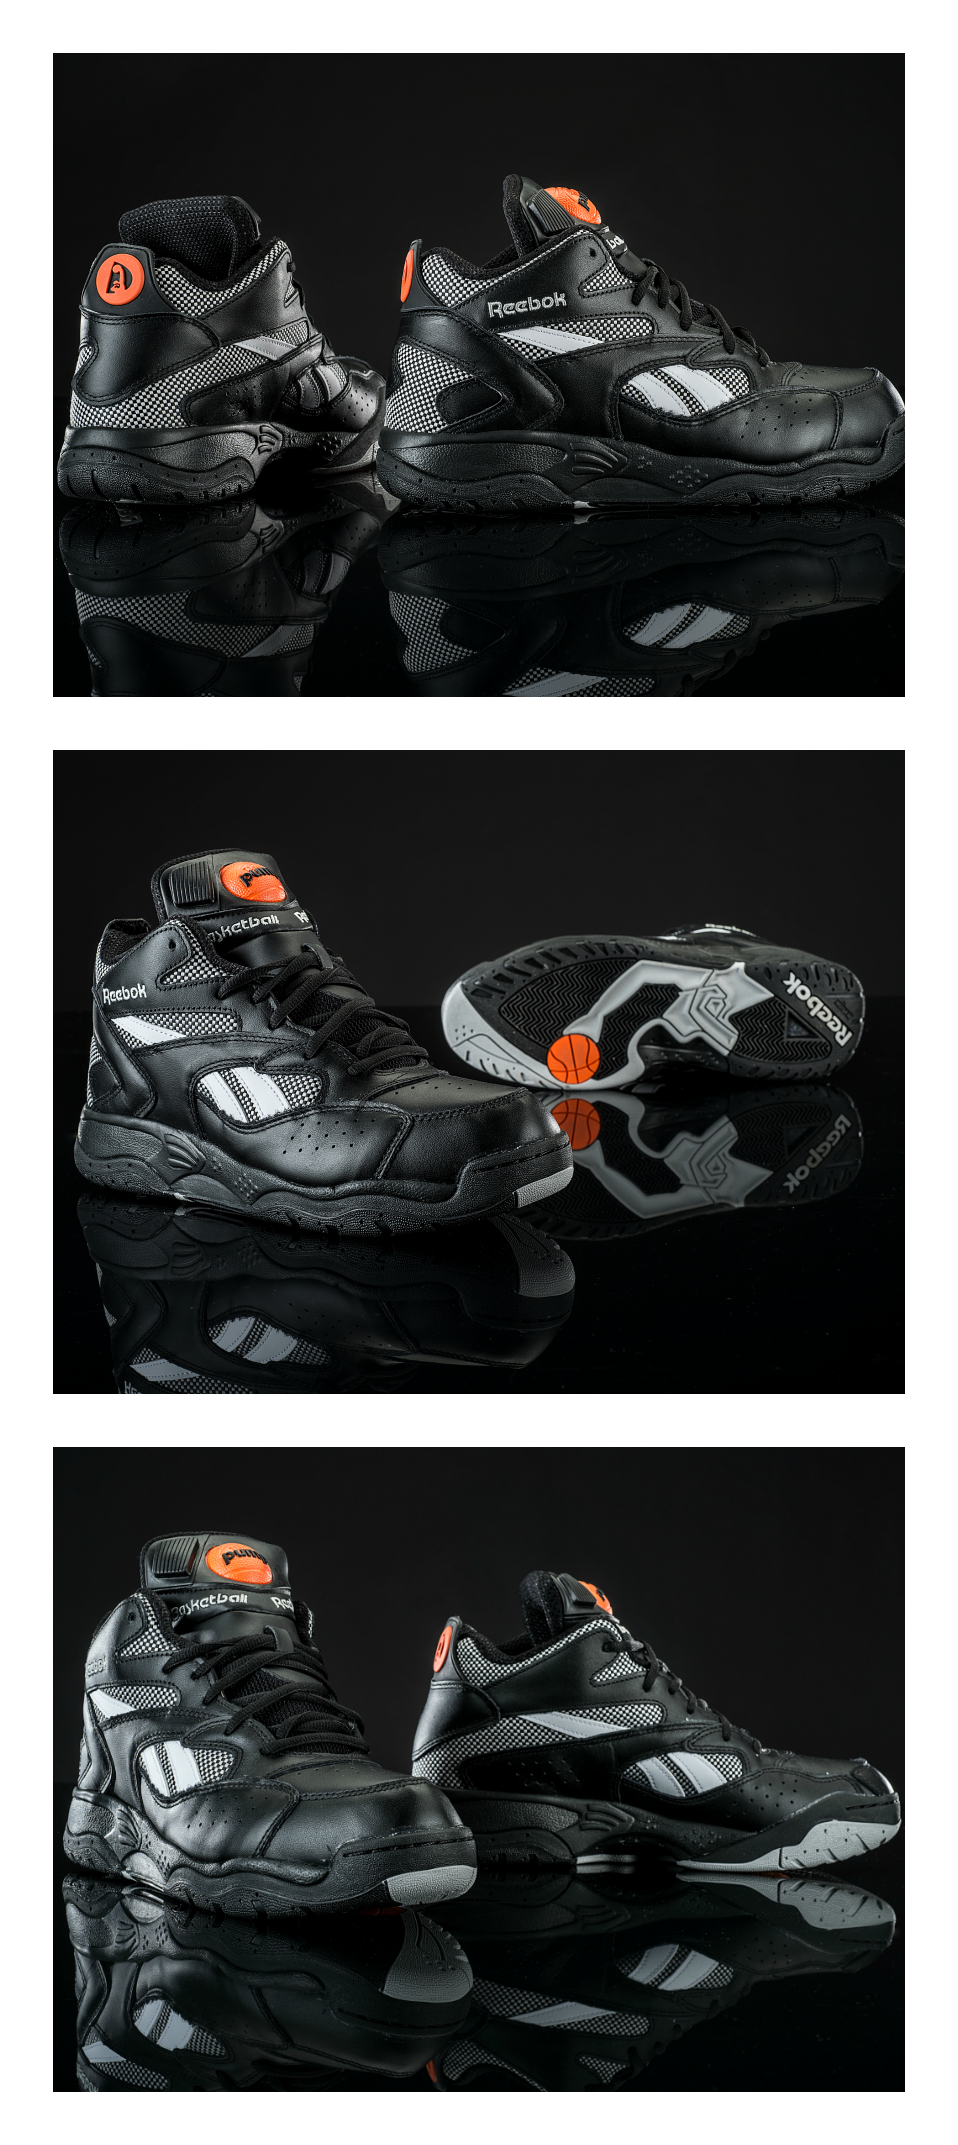 fef5c039827 Add this Dee Brown signature to your collection. The Reebok Pump D-Time is  up for grabs here.